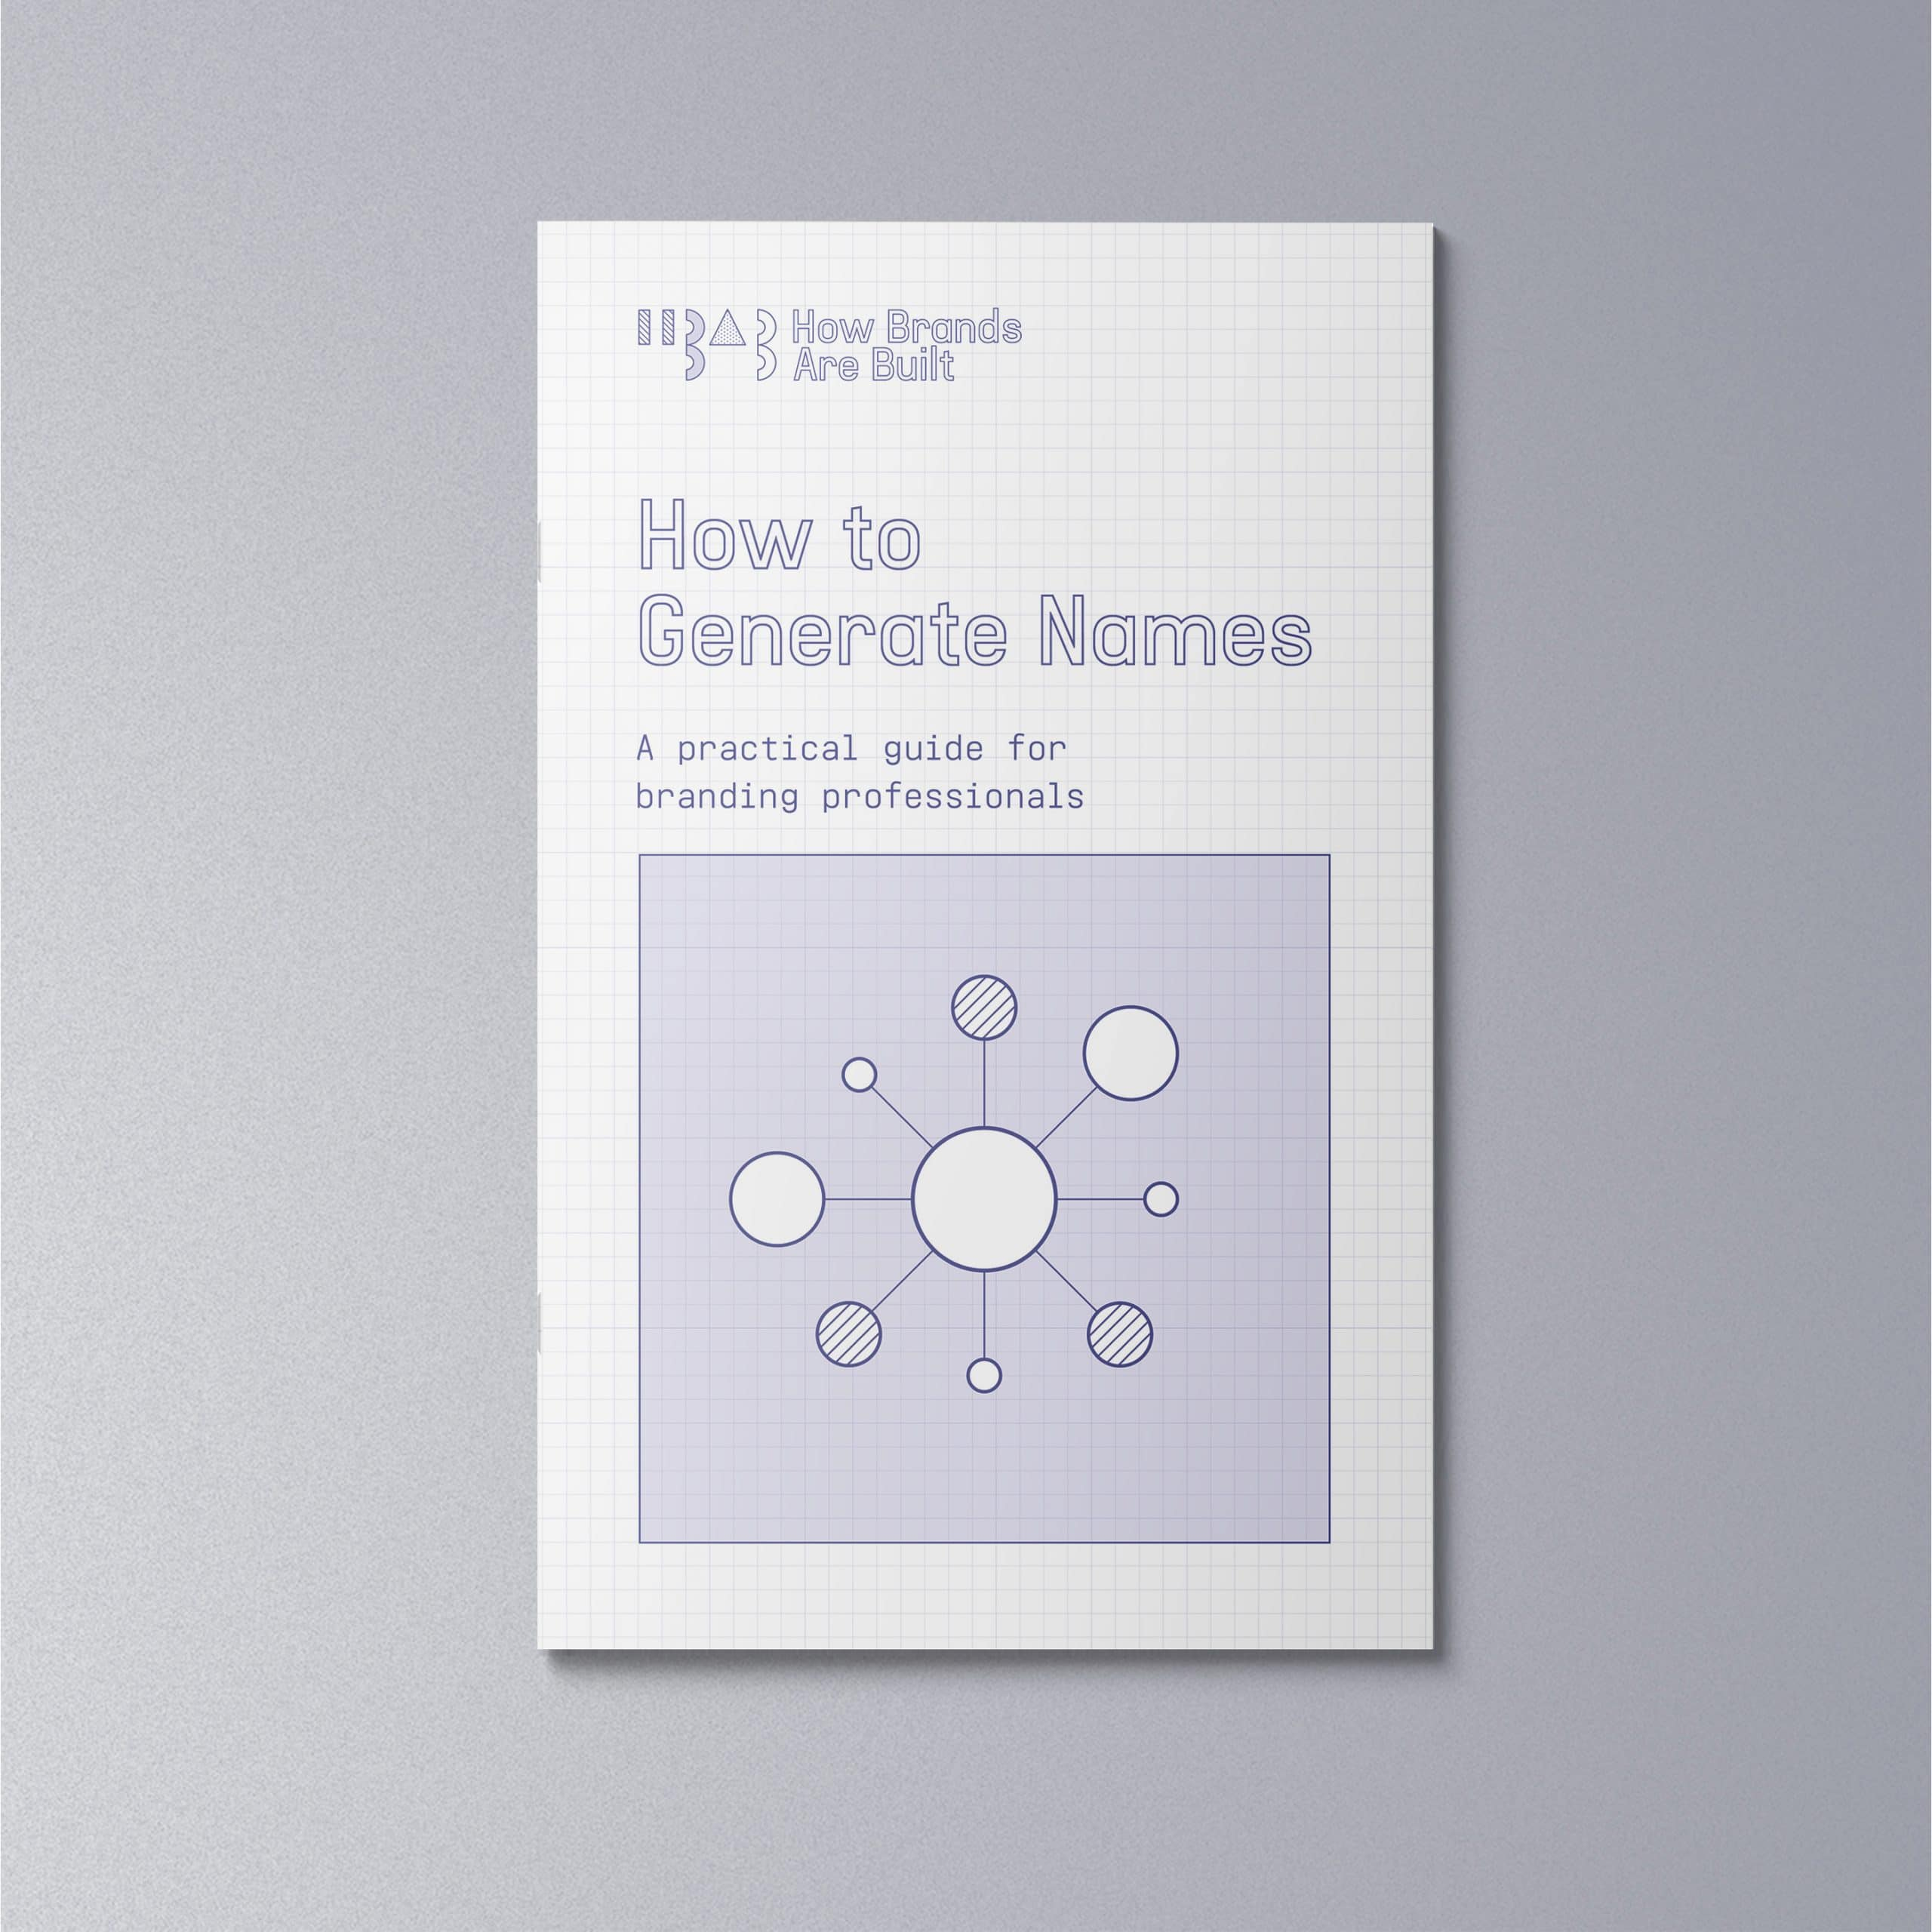 How to Generate Names ebook cover